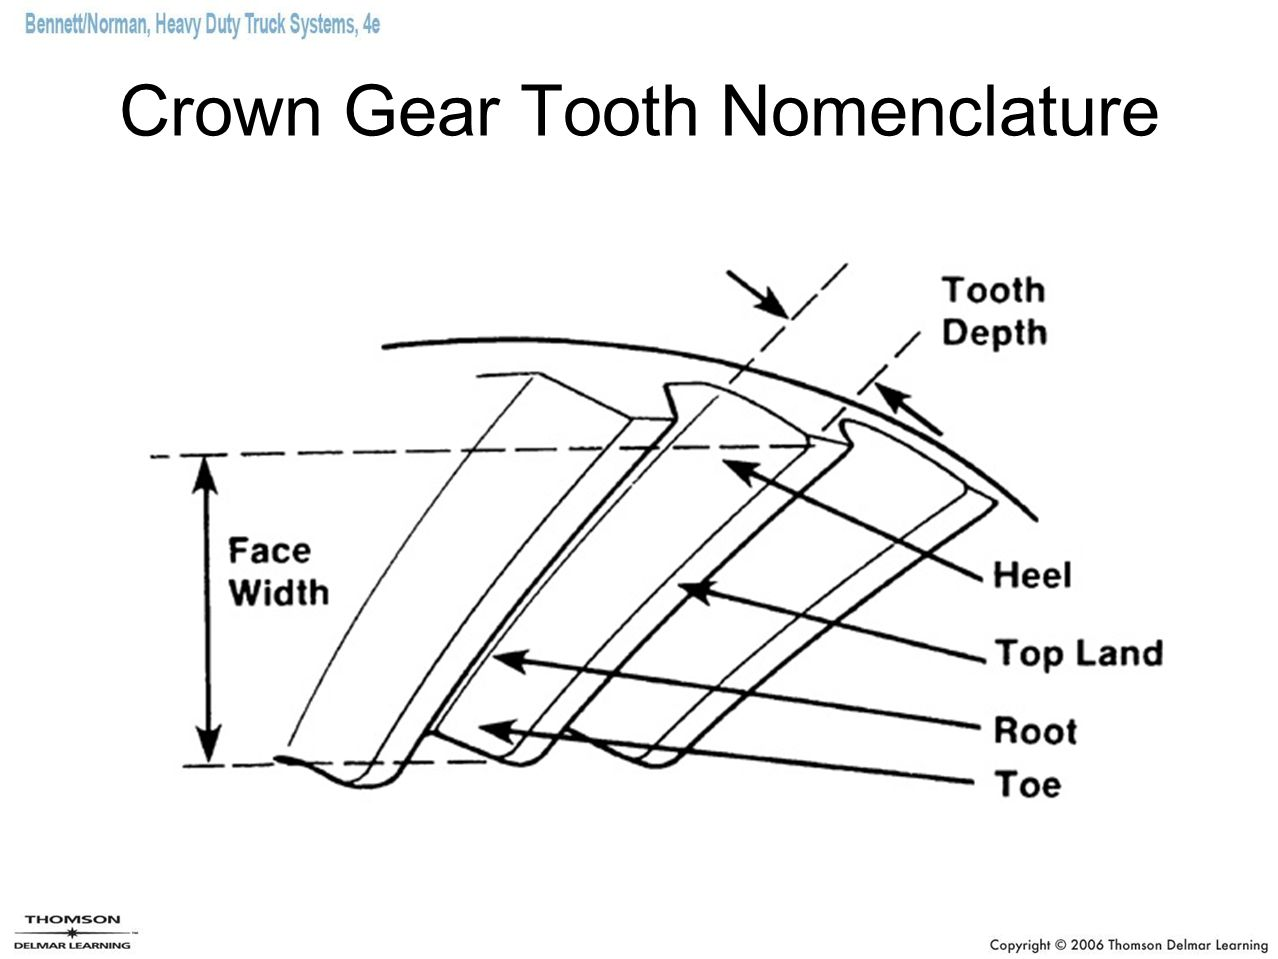 Crown Gear Tooth Nomenclature